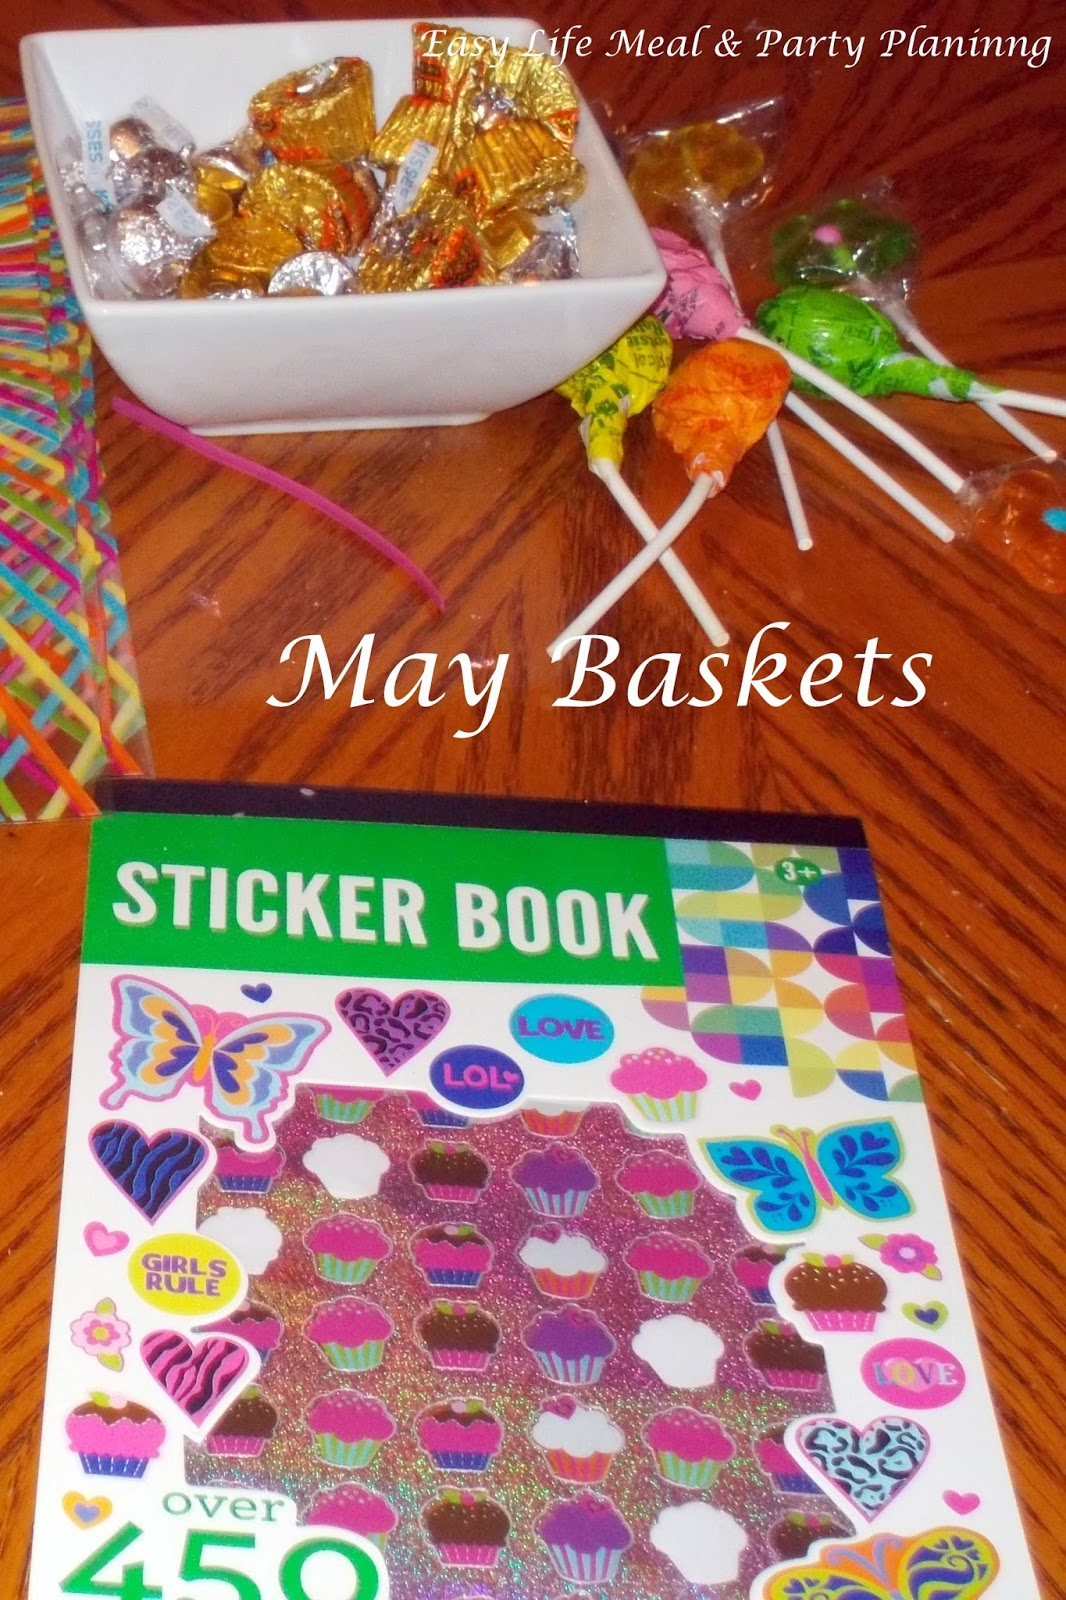 May Day Baskets - Easy Life Meal & Party Planning